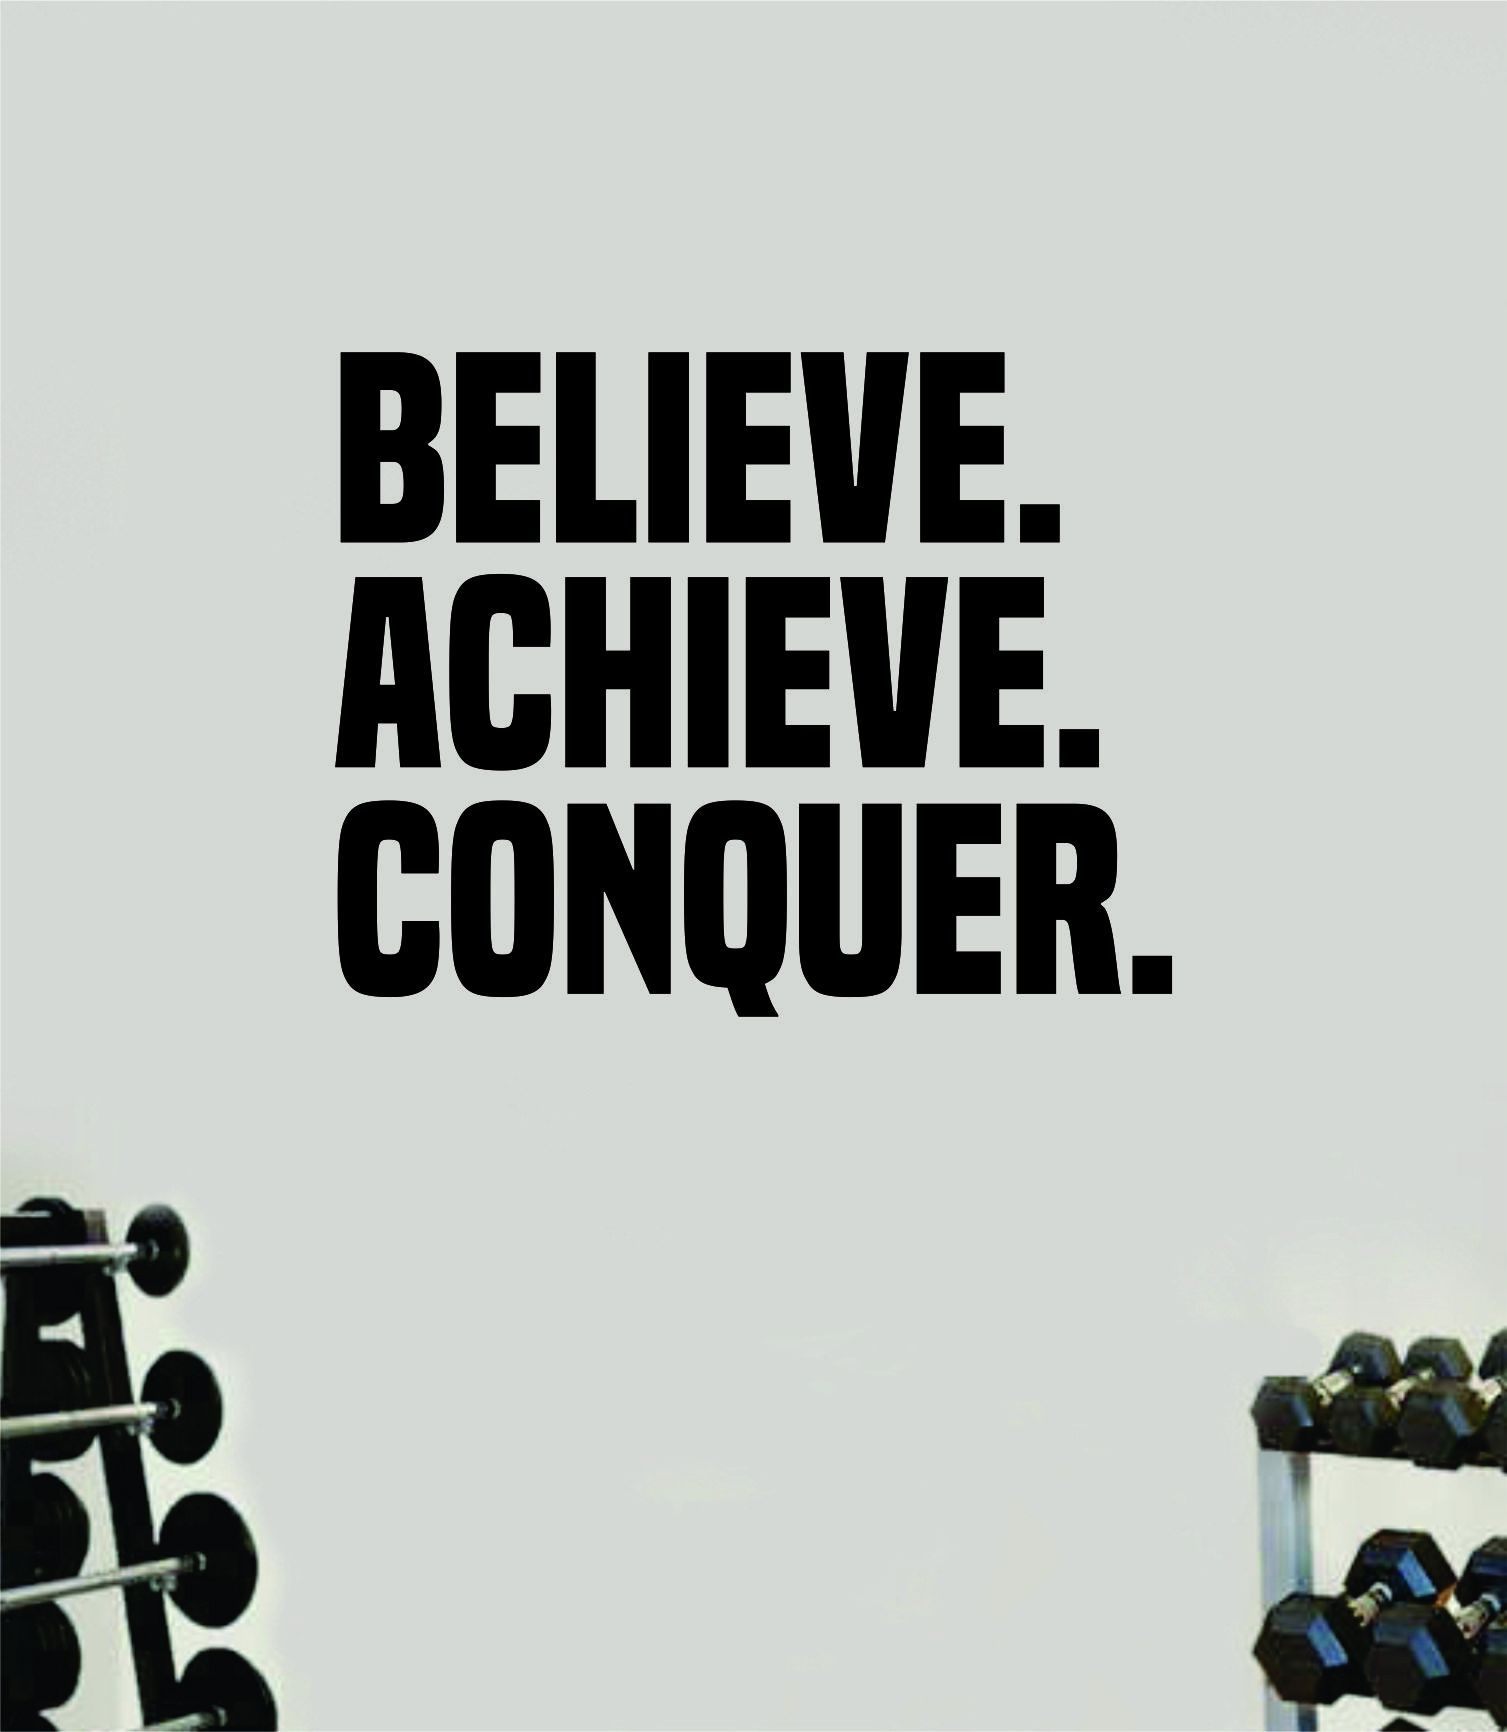 Believe Achieve Conquer Wall Decal Home Decor Bedroom Room Vinyl Sticker Art Teen Work Out Quote Gym Fitness Lift Strong Inspirational Motivational Health - brown